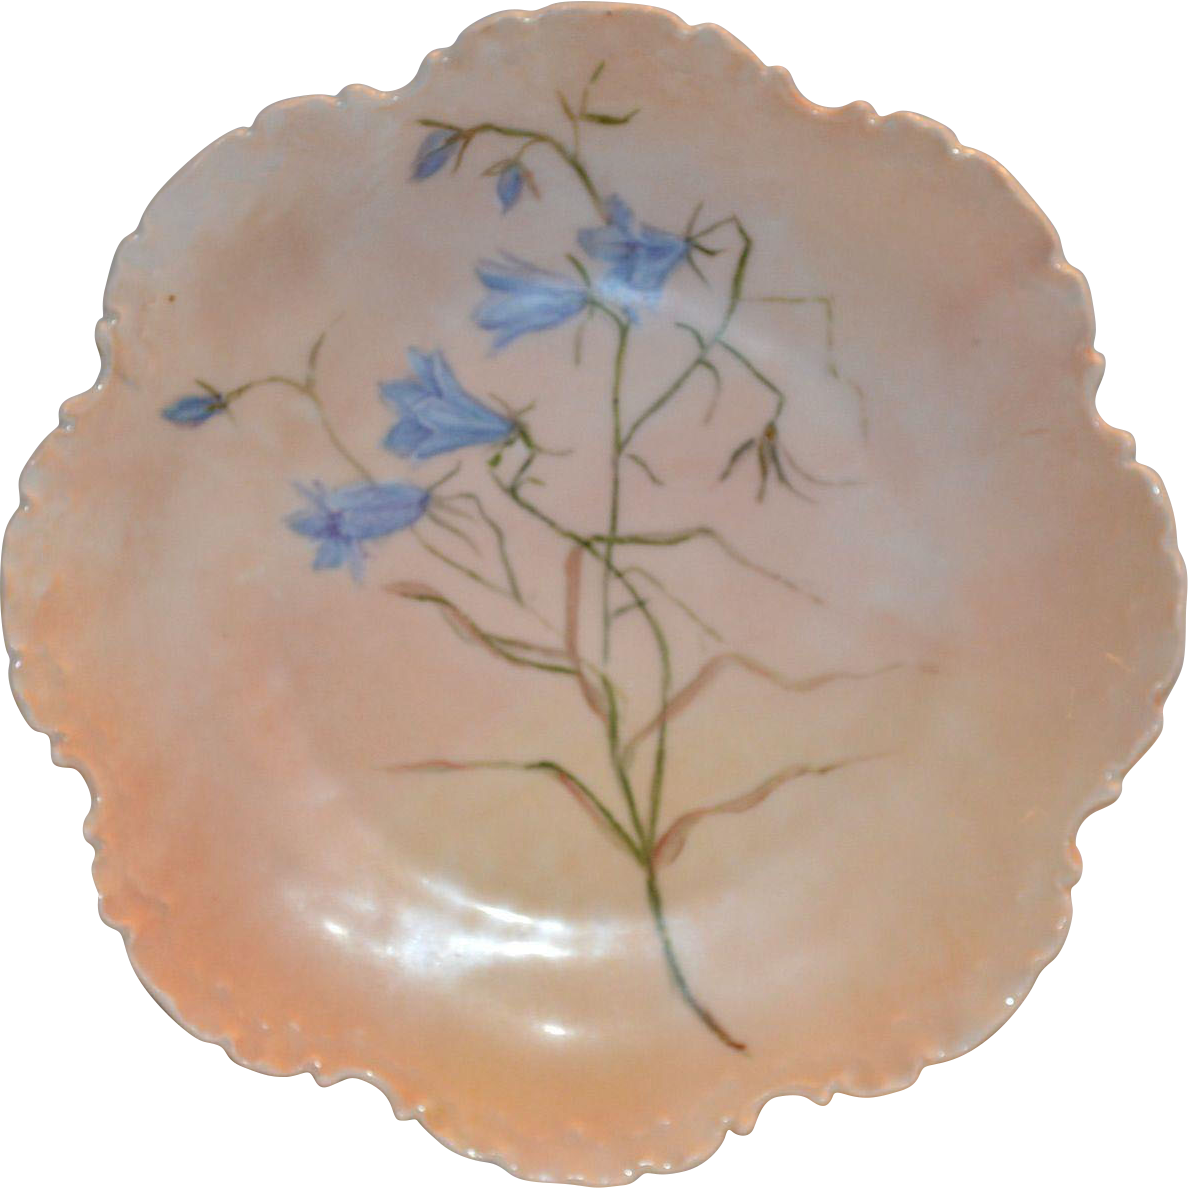 50% OFF Outstanding Rosenthal Cabinet Plate Hand Painted with Blue Wispy flowers on a Peach Background – Bavaria 1896-1907